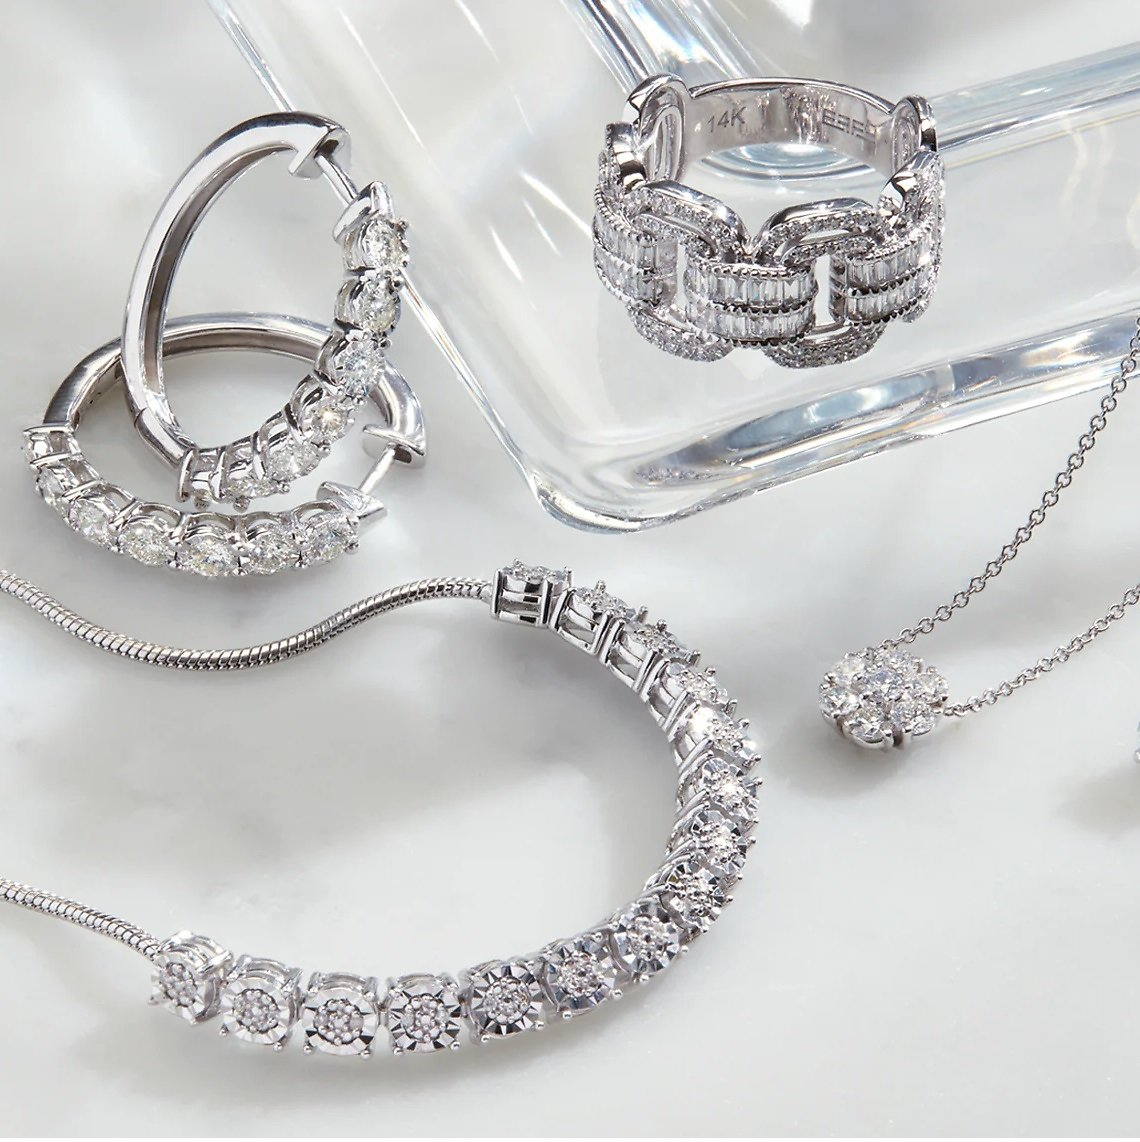 Up to 70% Off Saks Jewelry Event